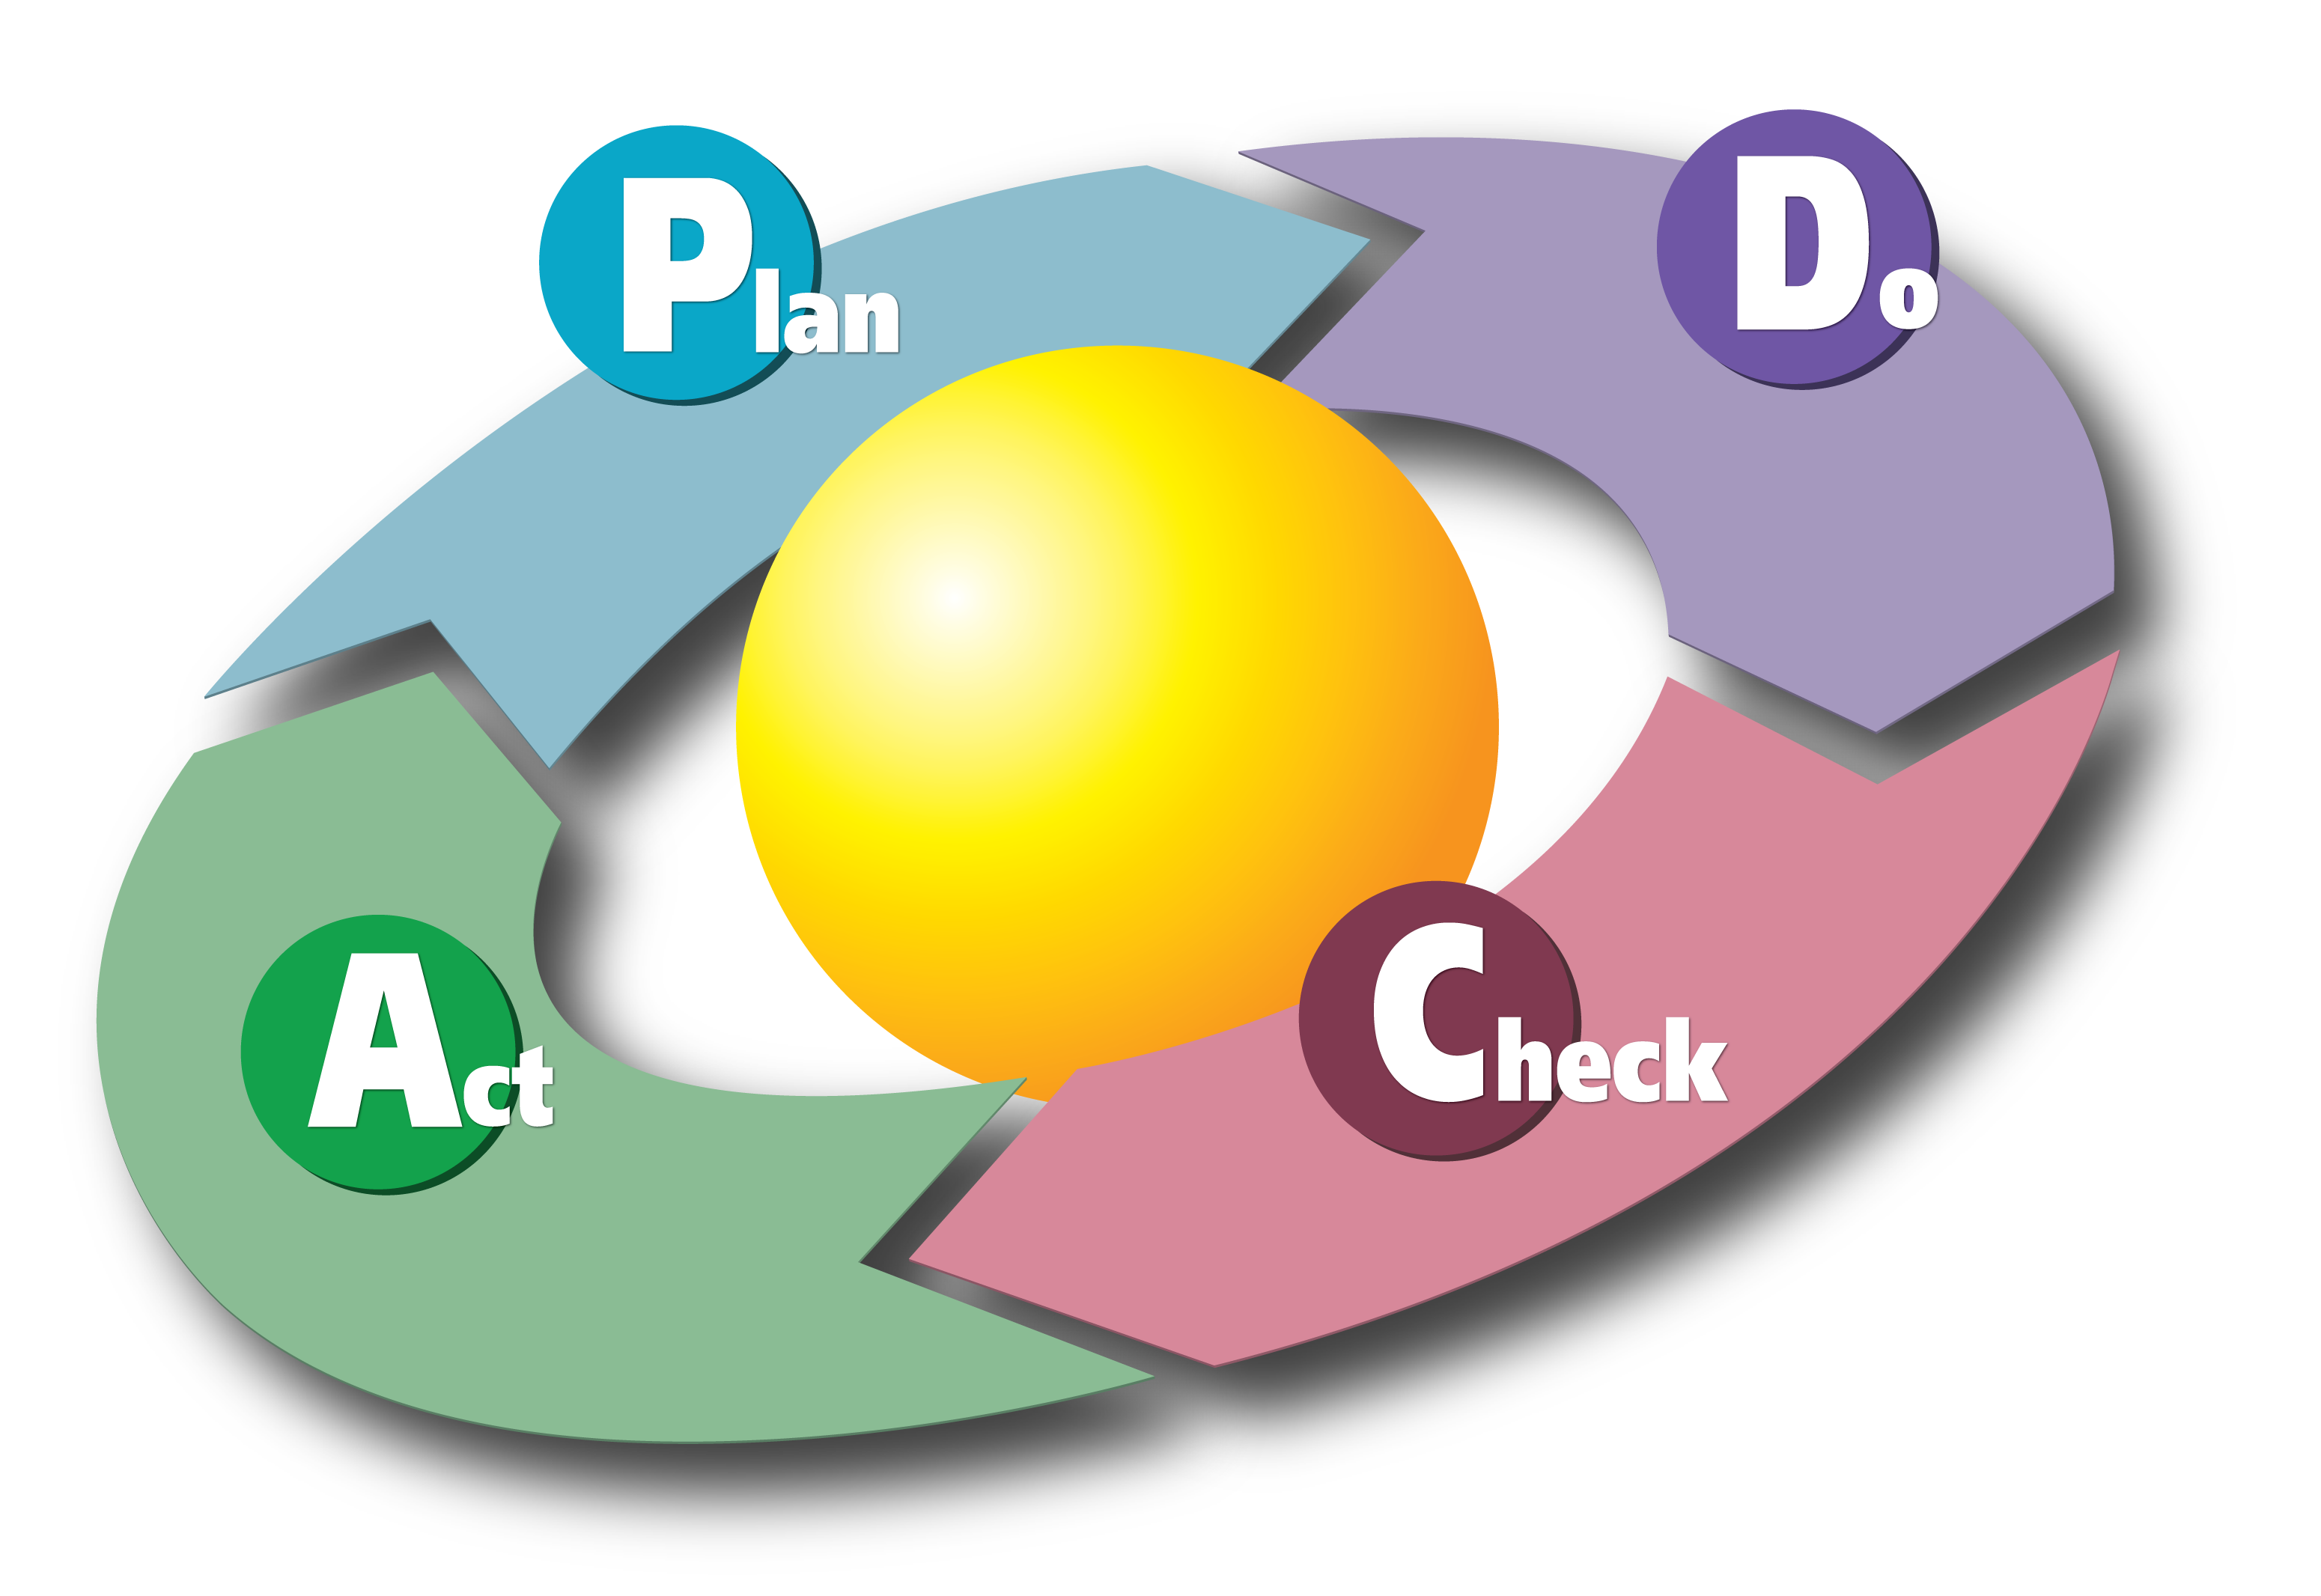 File:PDCA Cycle.svg - Wikimedia Commons